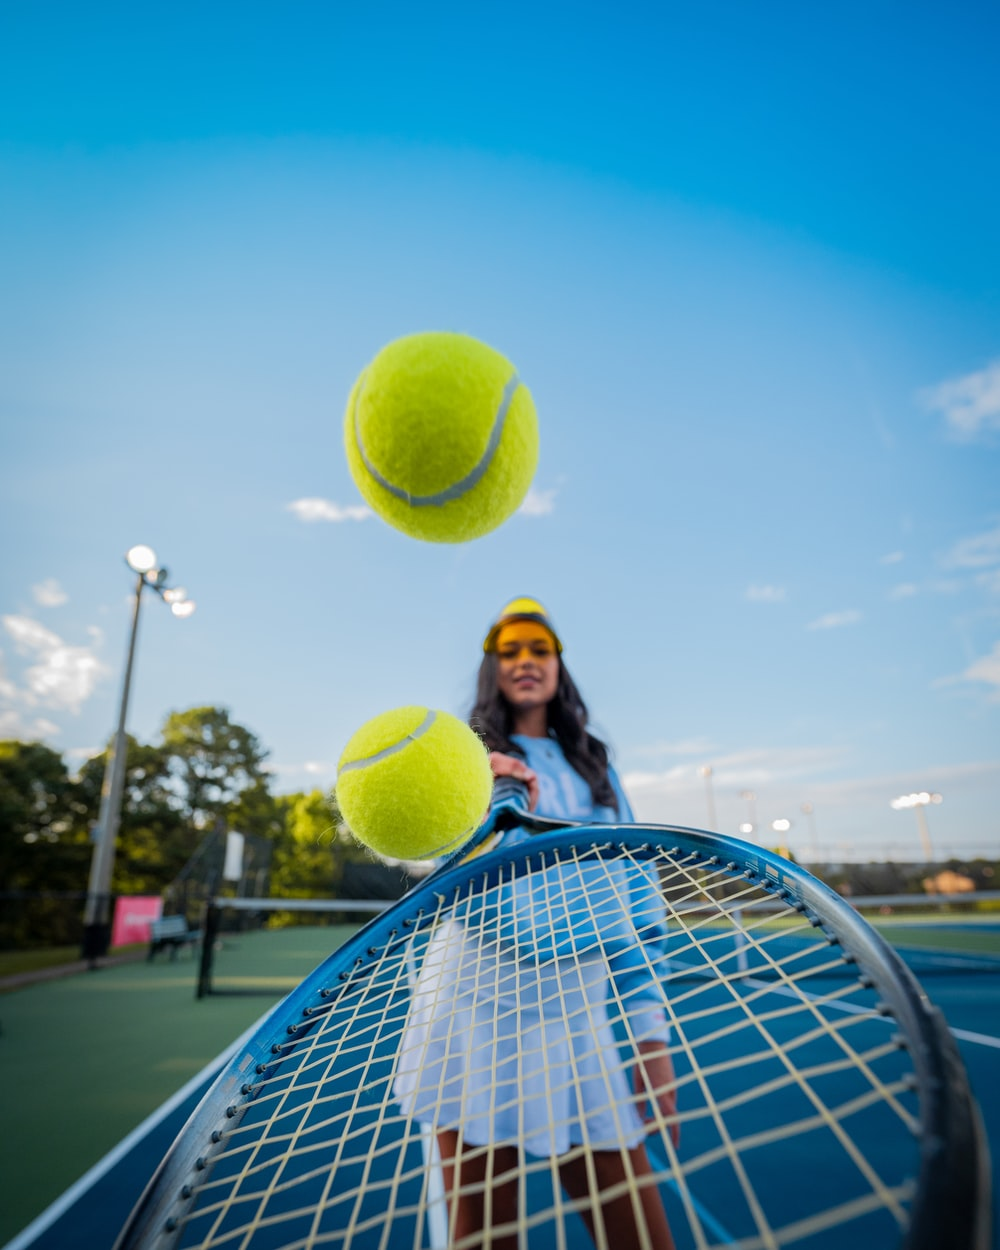 woman in black jacket and black pants holding tennis racket under blue sky during daytime